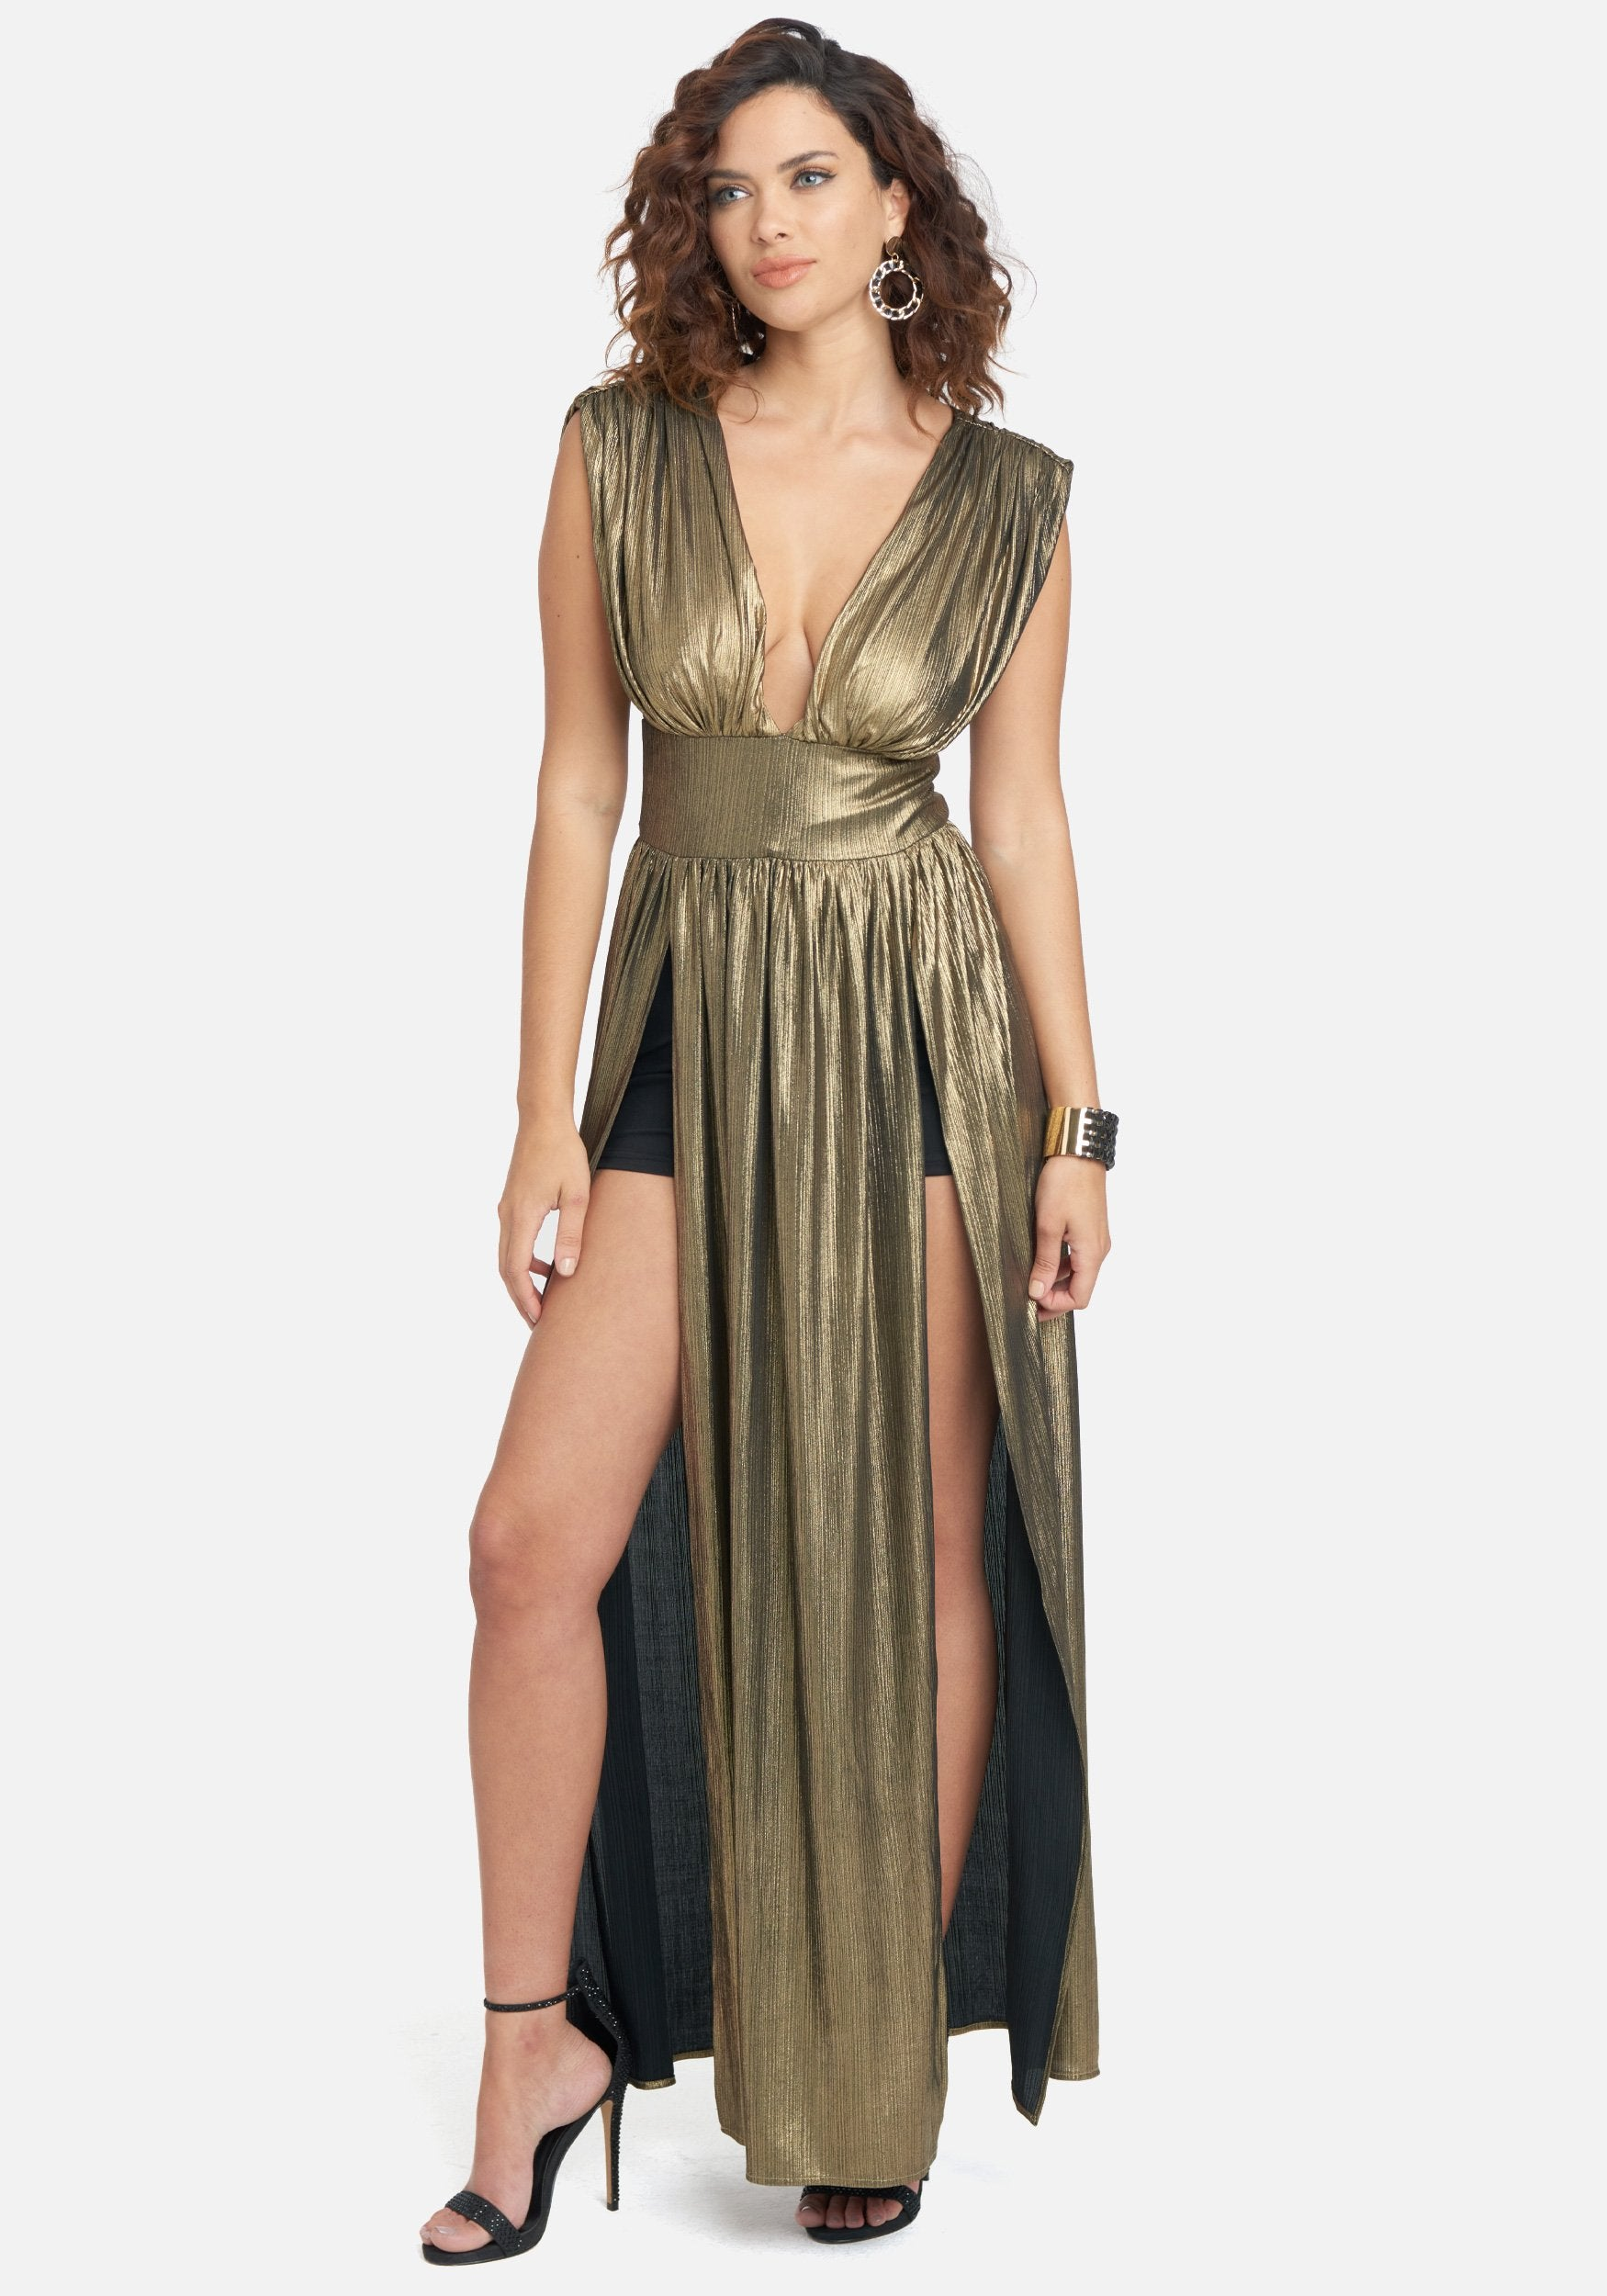 Bebe Women's Gold Metallic High Slit Gown, Size XXS Metal/Spandex